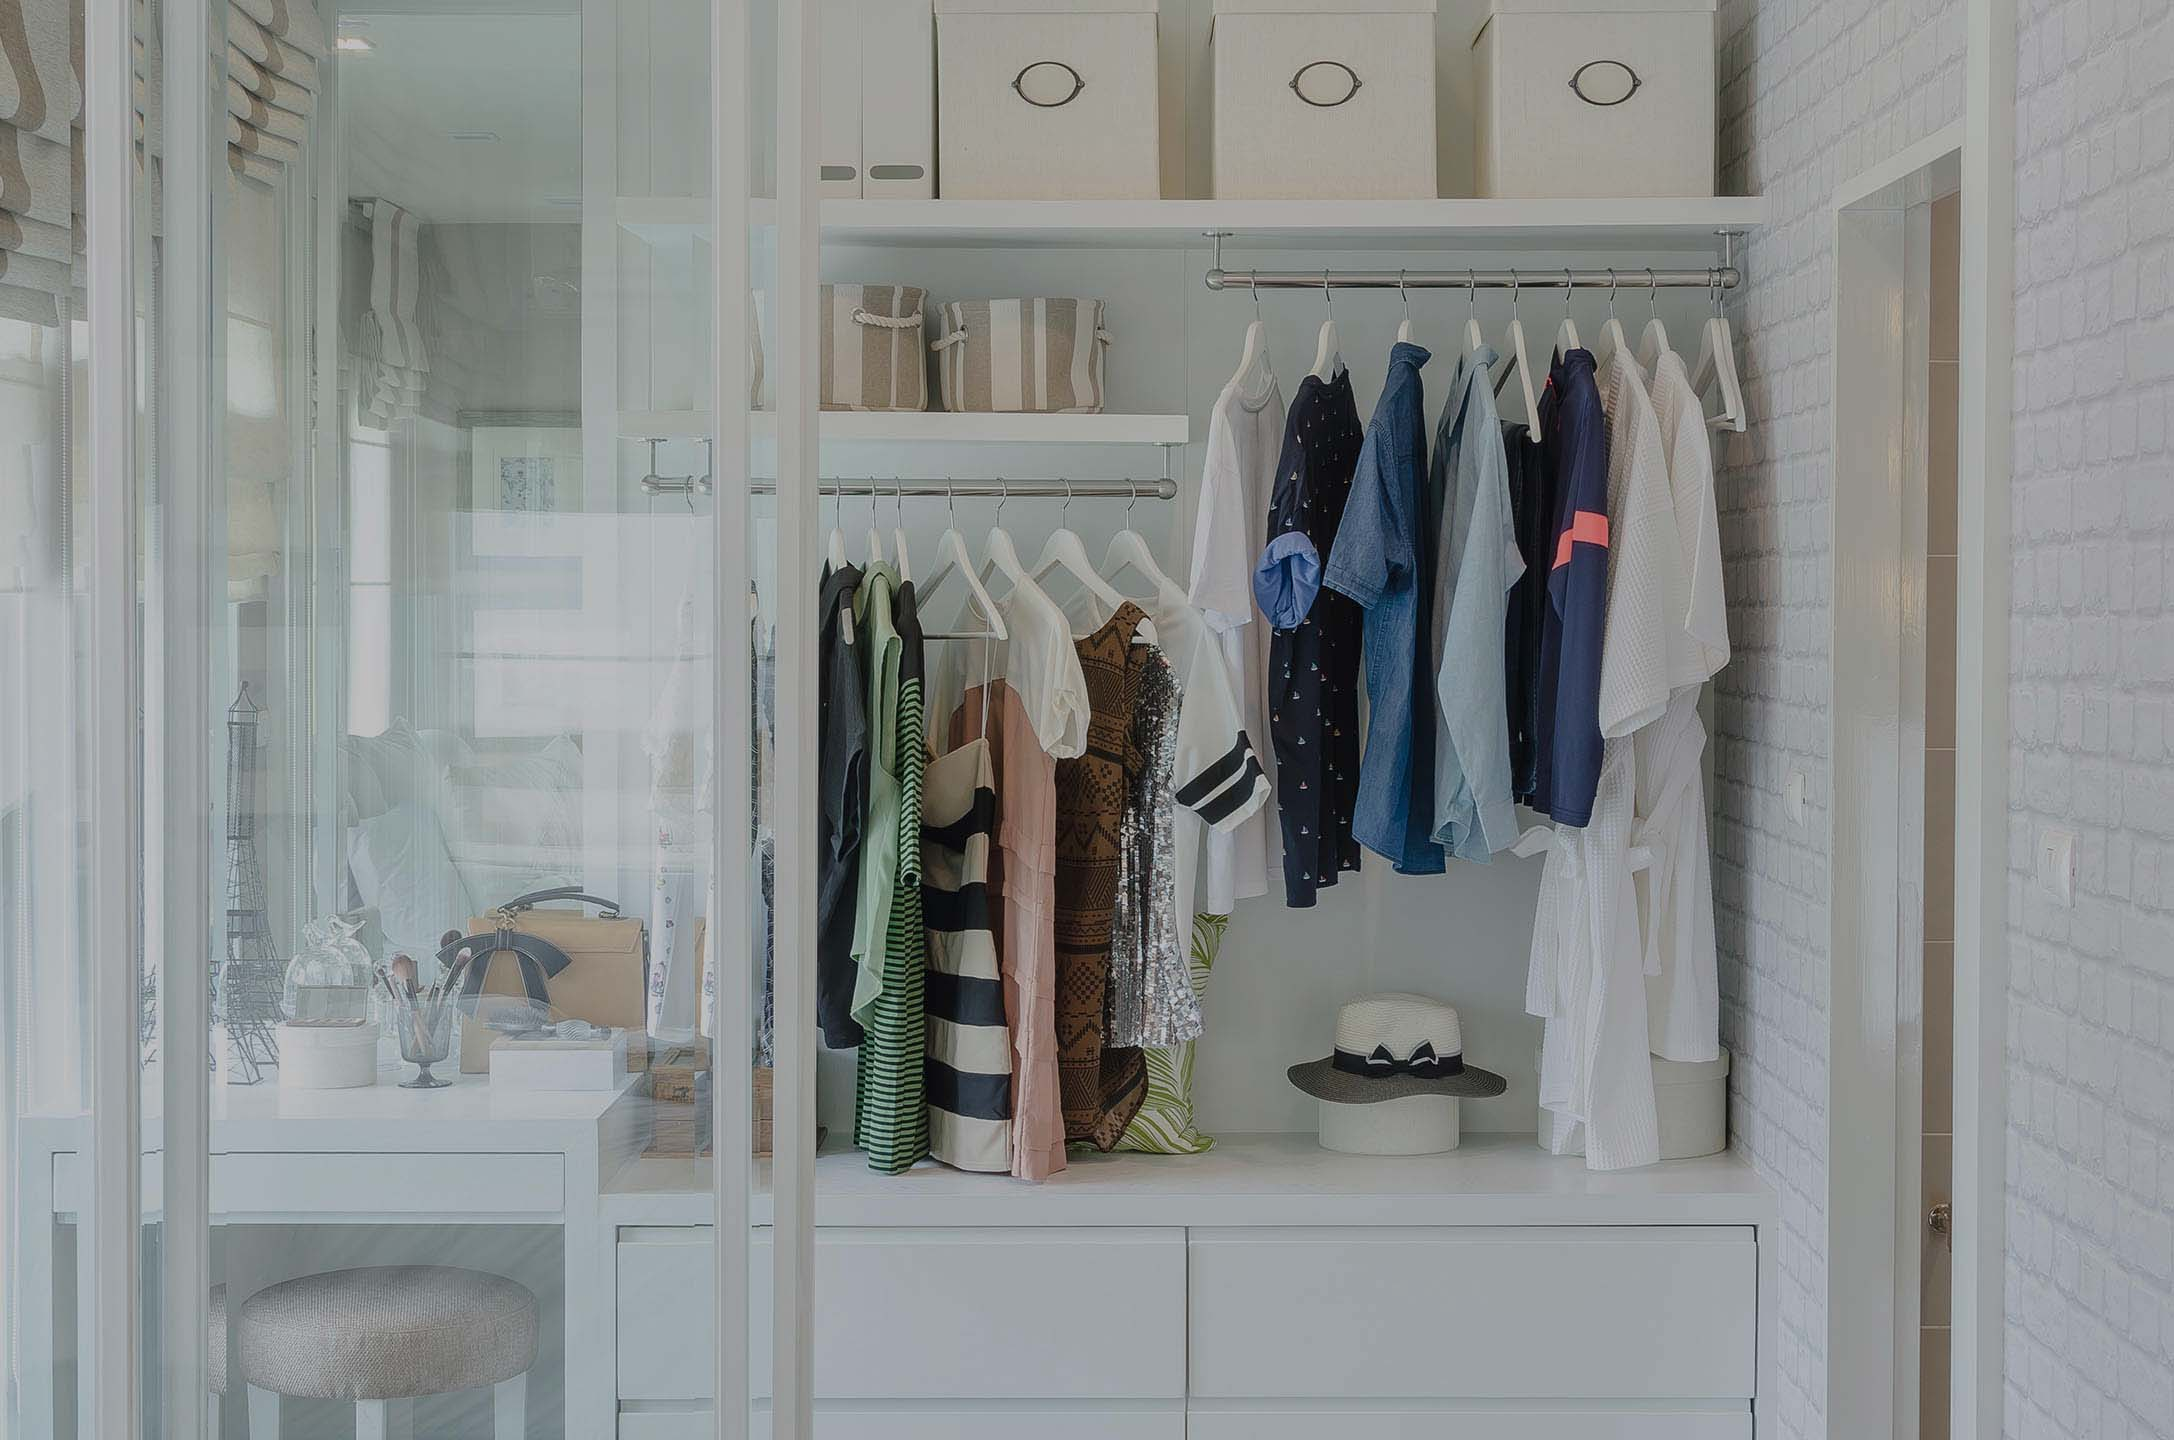 closet organizing service in-home closet organization pantry ctocking garage organizing clothing sorting o-25